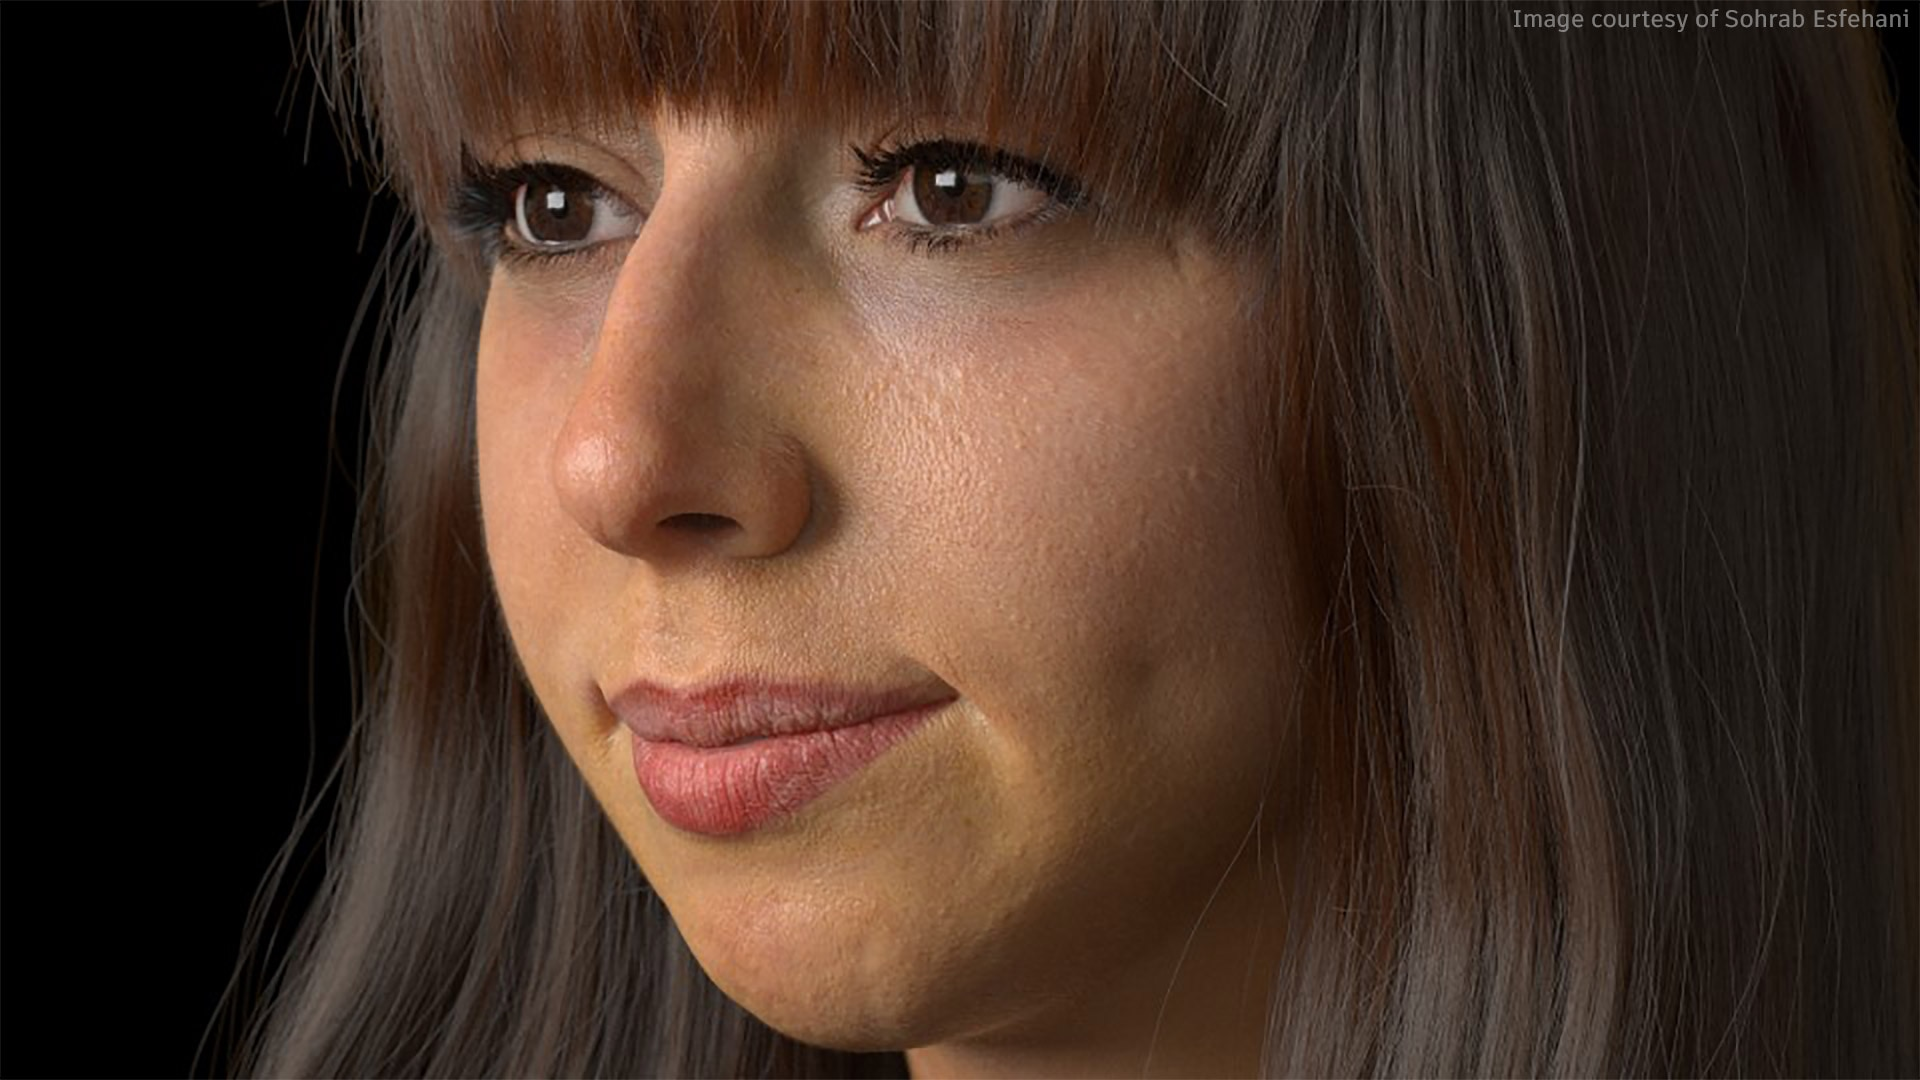 Highly realistic rendering of a young brown-haired woman with fringe and brown eyes